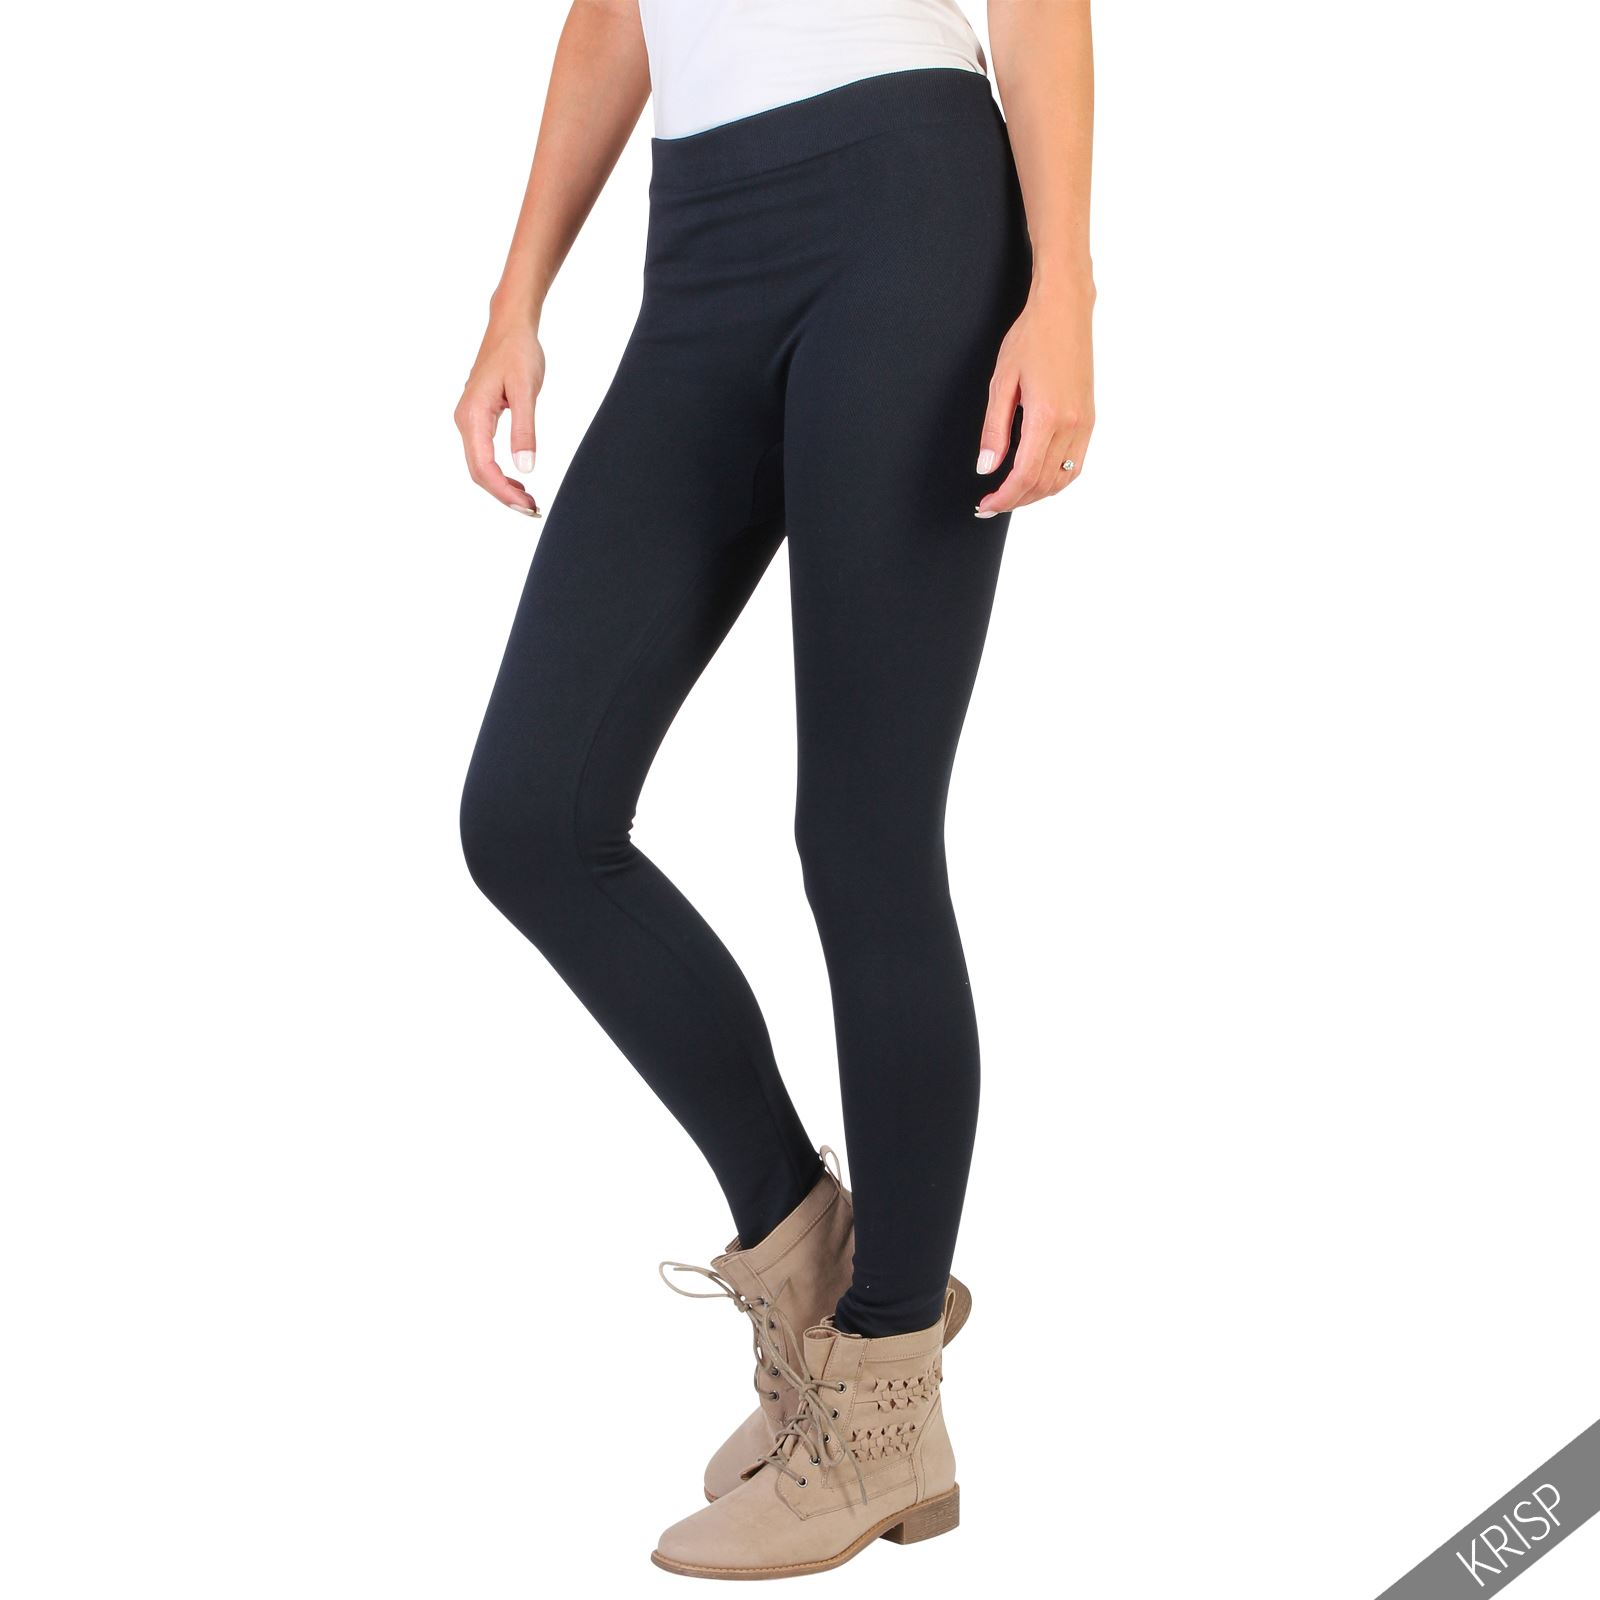 thermal women Skins dnamic thermal long tights merge our best compression tech with  temperature regulating thermal fabrics to keep you warm, fight fatigue and reduce .